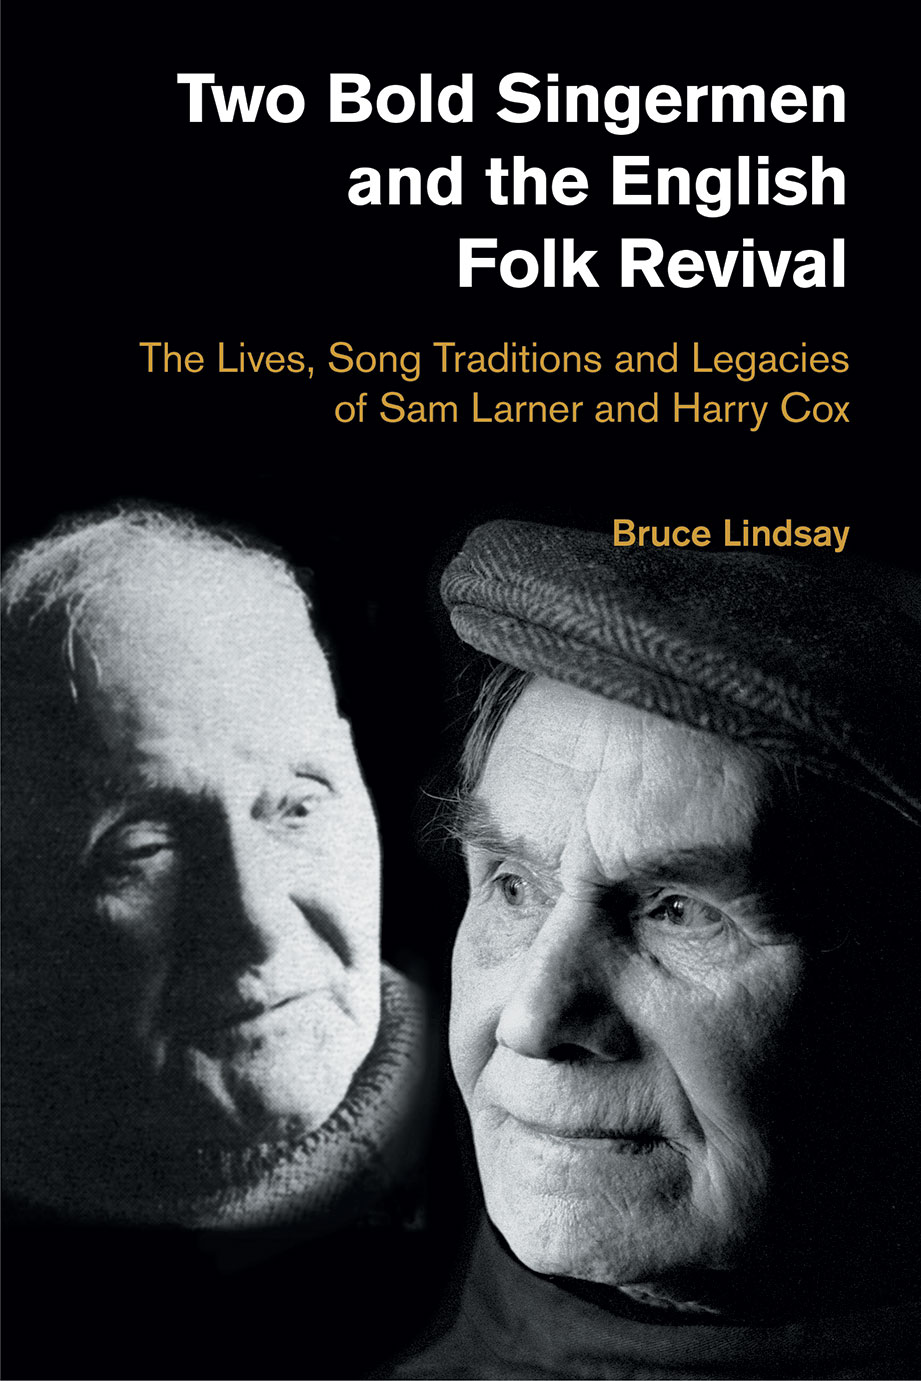 Two Bold Singermen and the English Folk Revival - The Lives, Song Traditions and Legacies of Sam Larner and Harry Cox - Bruce Lindsay